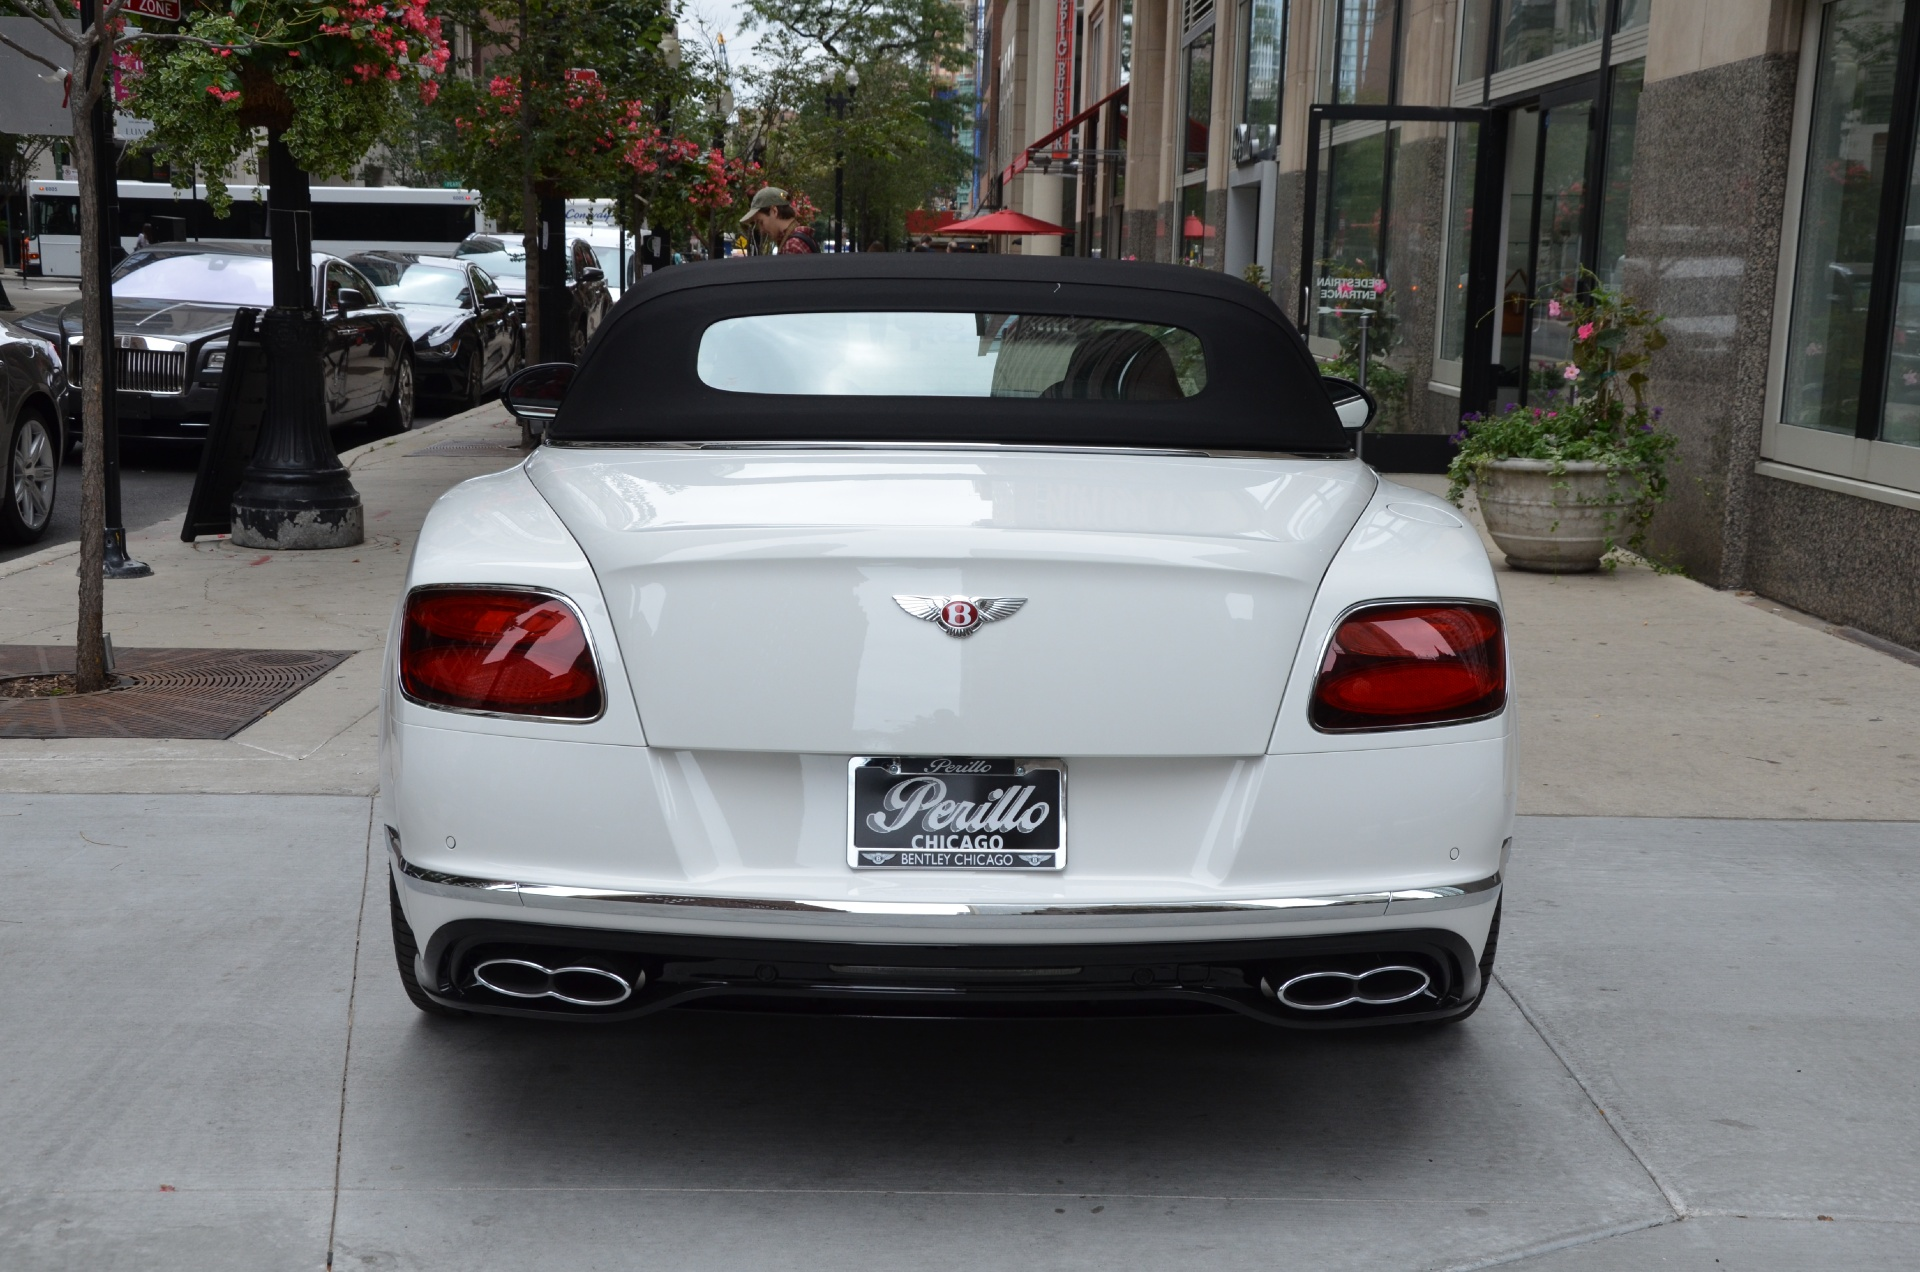 2016 Bentley Continental Gtc V8 S Stock B728 For Sale